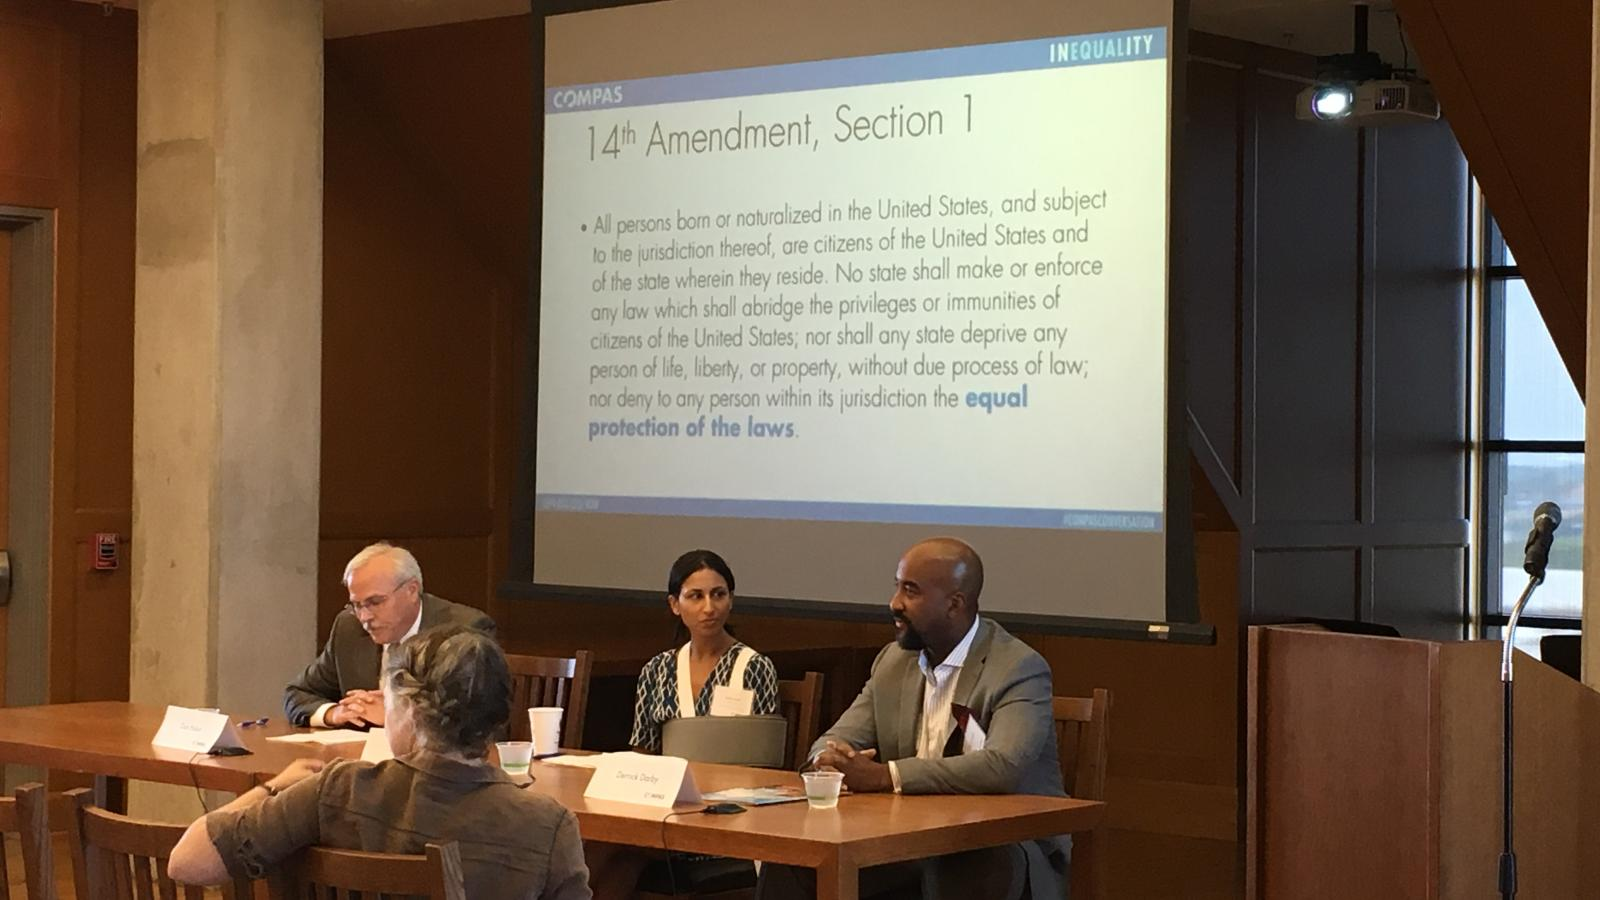 Derrick Darby and Rekha Nath speak at the Fall Conference